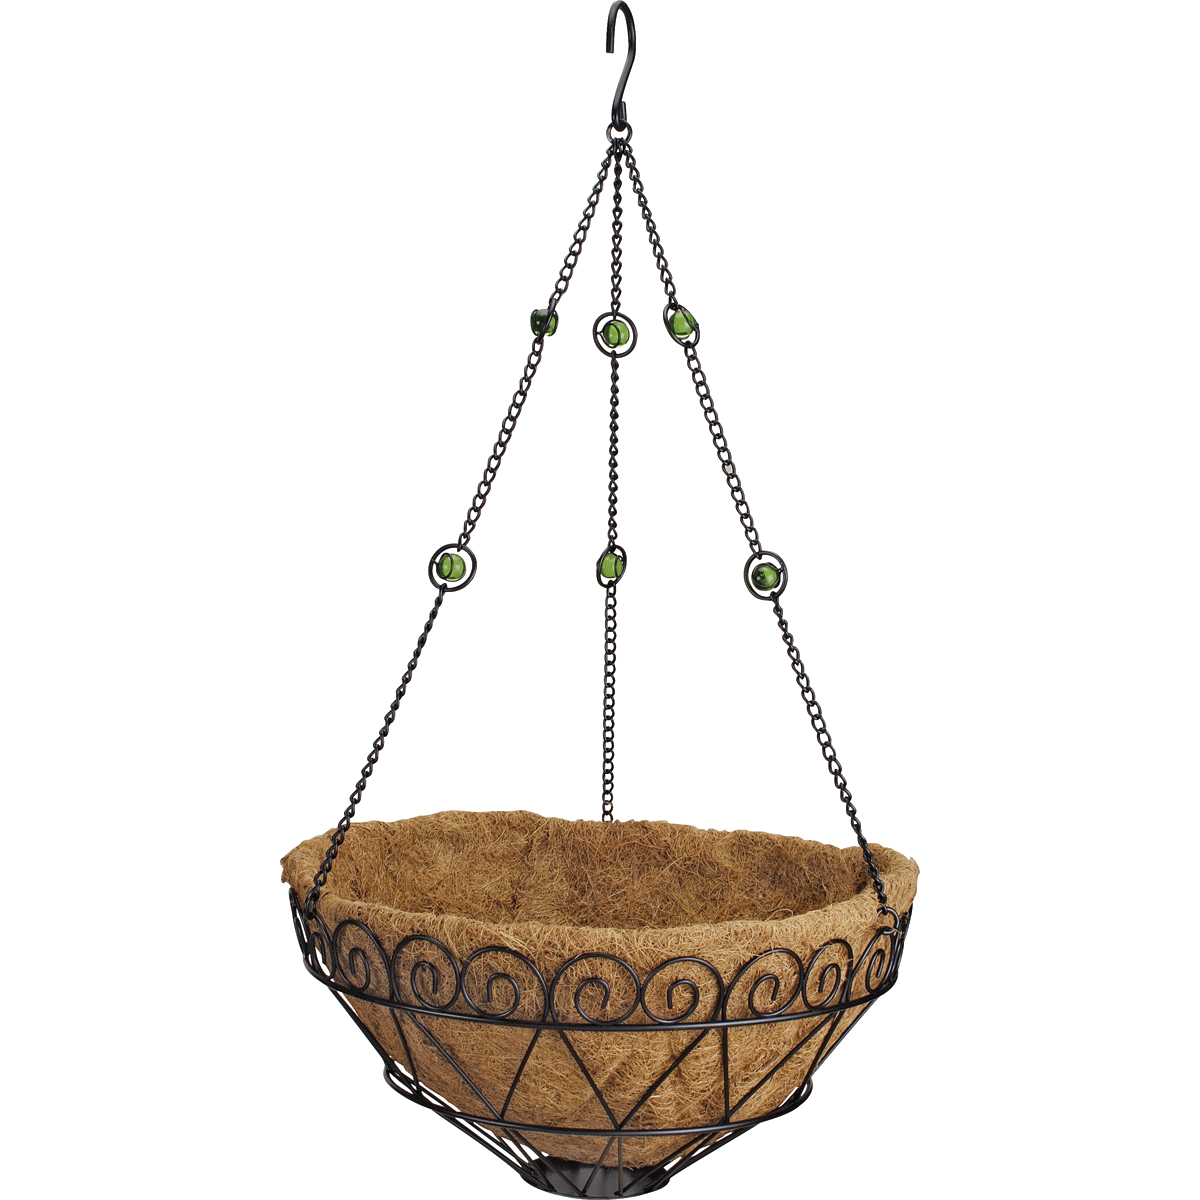 Picture of Landscapers Select T0017-3L Hanging Planter with Coconut Fiber Liner, Circle, 22 lb Capacity, Natural Coconut/Steel